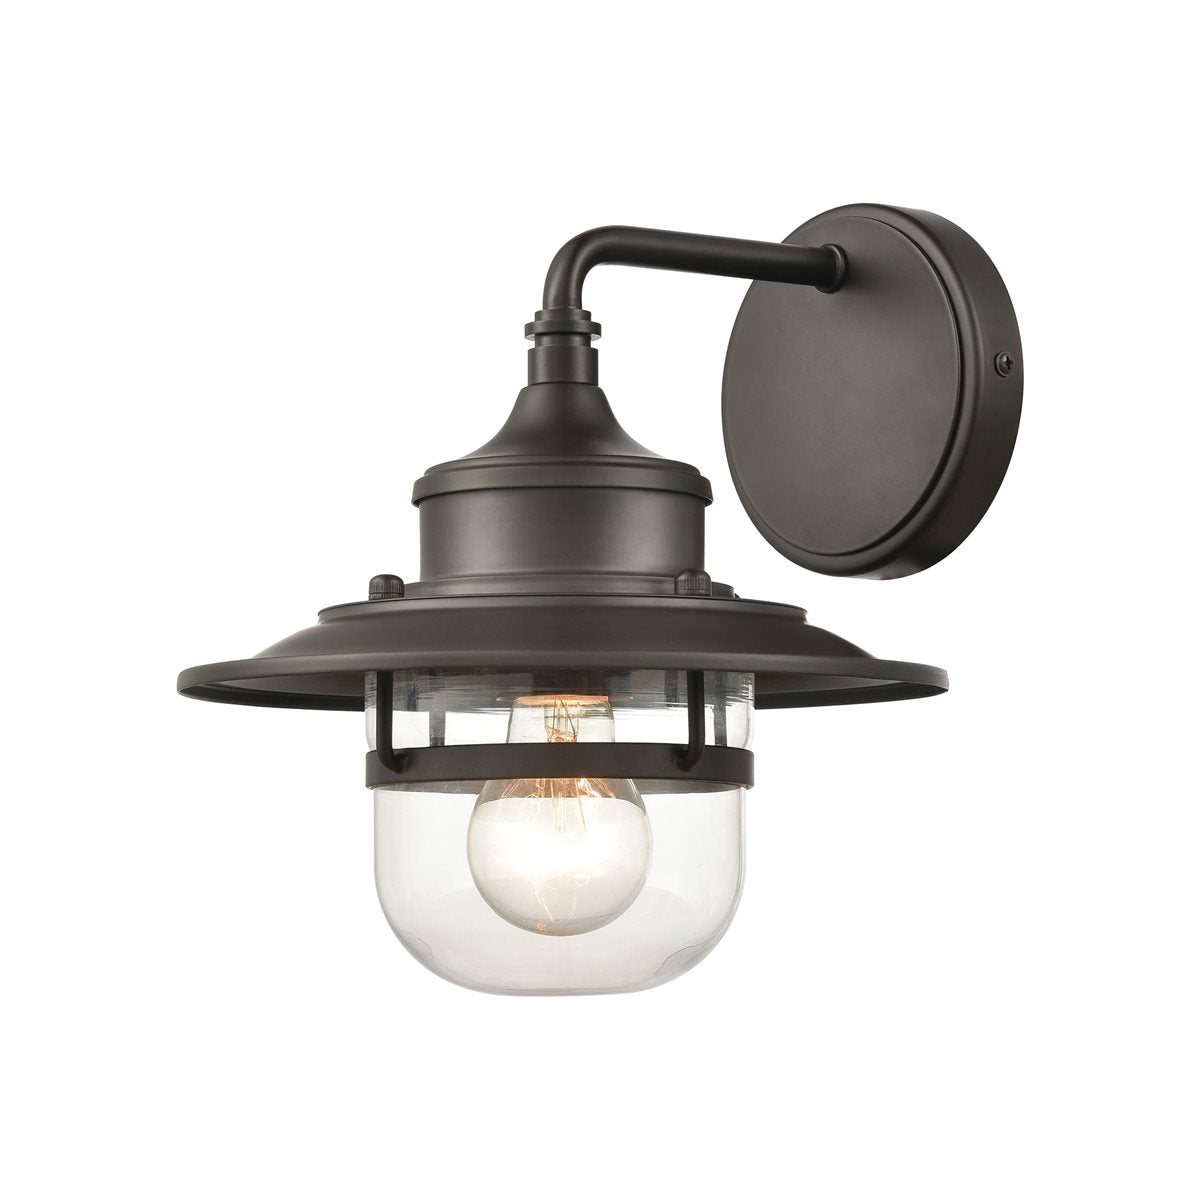 Remington 1 Light Outdoor Sconce